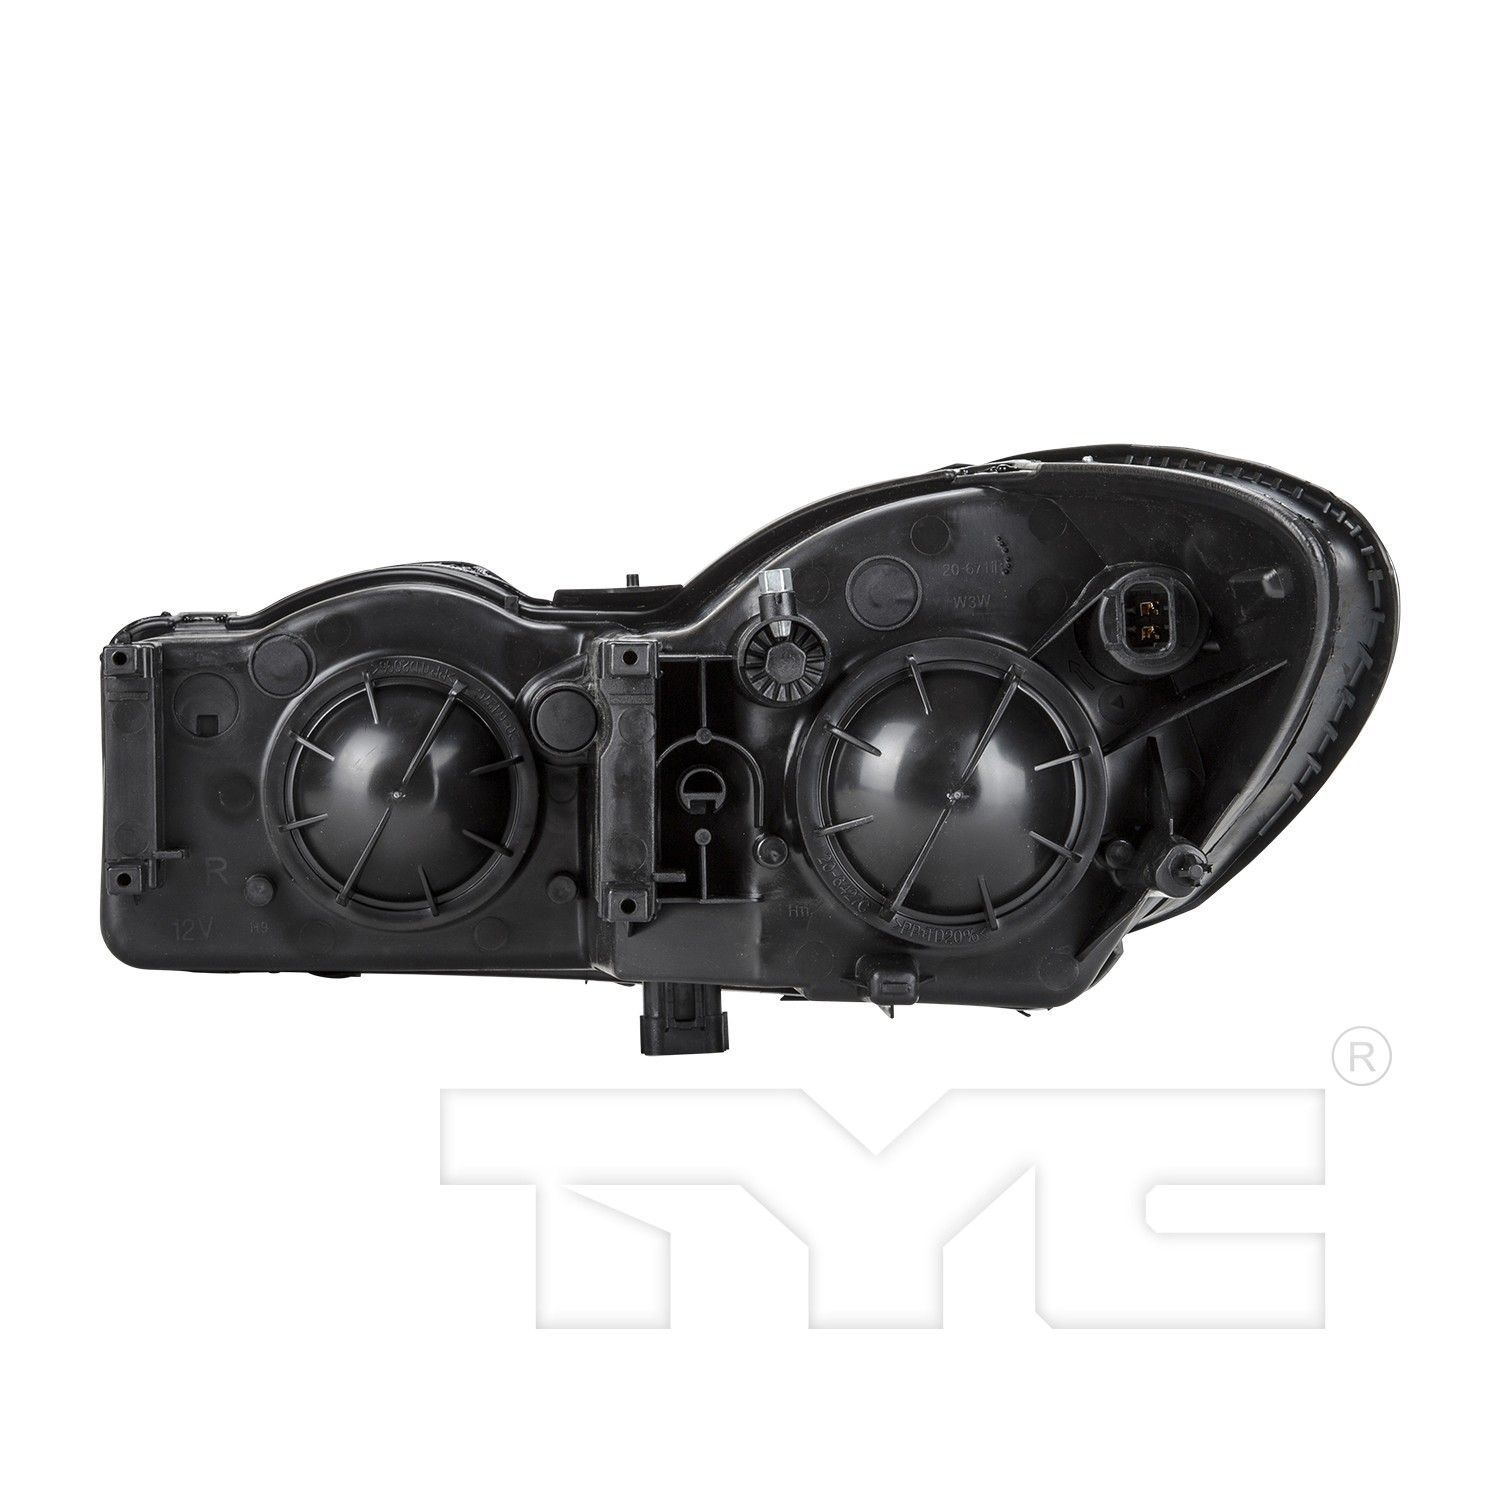 2005 Buick Lacrosse Headlight Embly Right Tyc Products 20 6711 00 1 California Proposition 65 Warning This Product Can Expose You To Chemicals